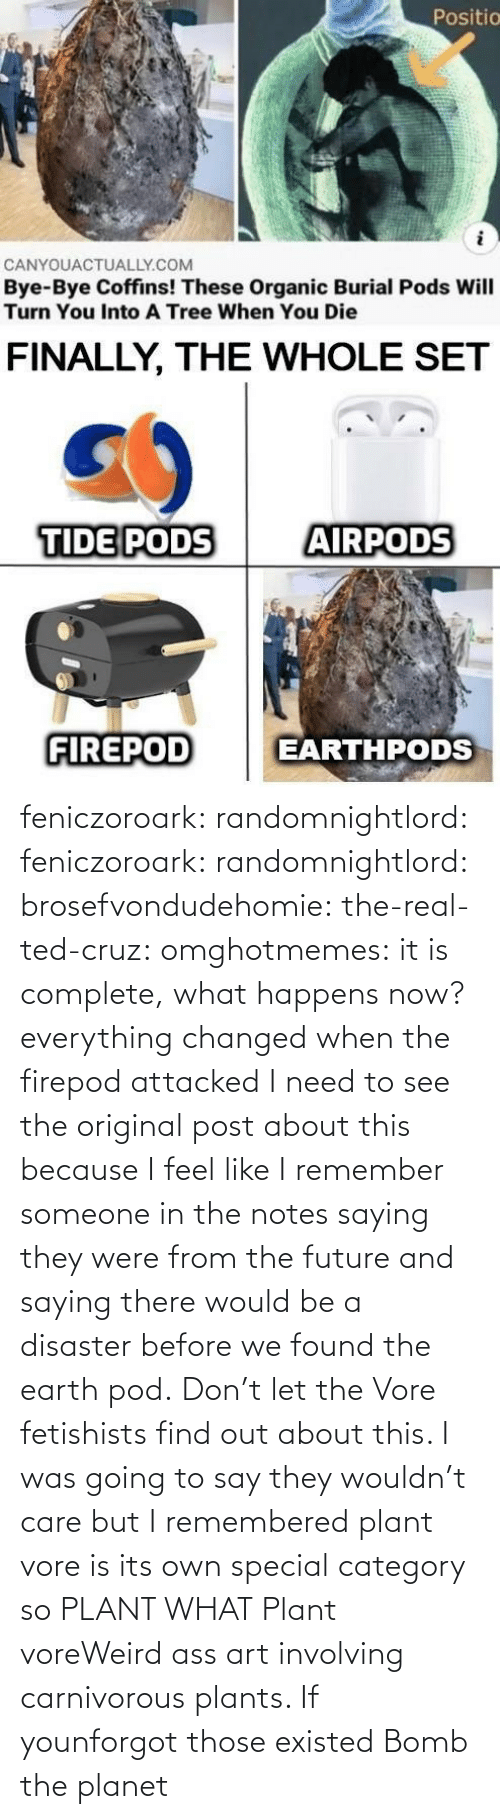 Earth: feniczoroark:  randomnightlord:  feniczoroark:  randomnightlord:  brosefvondudehomie: the-real-ted-cruz:  omghotmemes: it is complete, what happens now? everything changed when the firepod attacked    I need to see the original post about this because I feel like I remember someone in the notes saying they were from the future and saying there would be a disaster before we found the earth pod.    Don't let the Vore fetishists find out about this.    I was going to say they wouldn't care but I remembered plant vore is its own special category so   PLANT WHAT   Plant voreWeird ass art involving carnivorous plants. If younforgot those existed   Bomb the planet